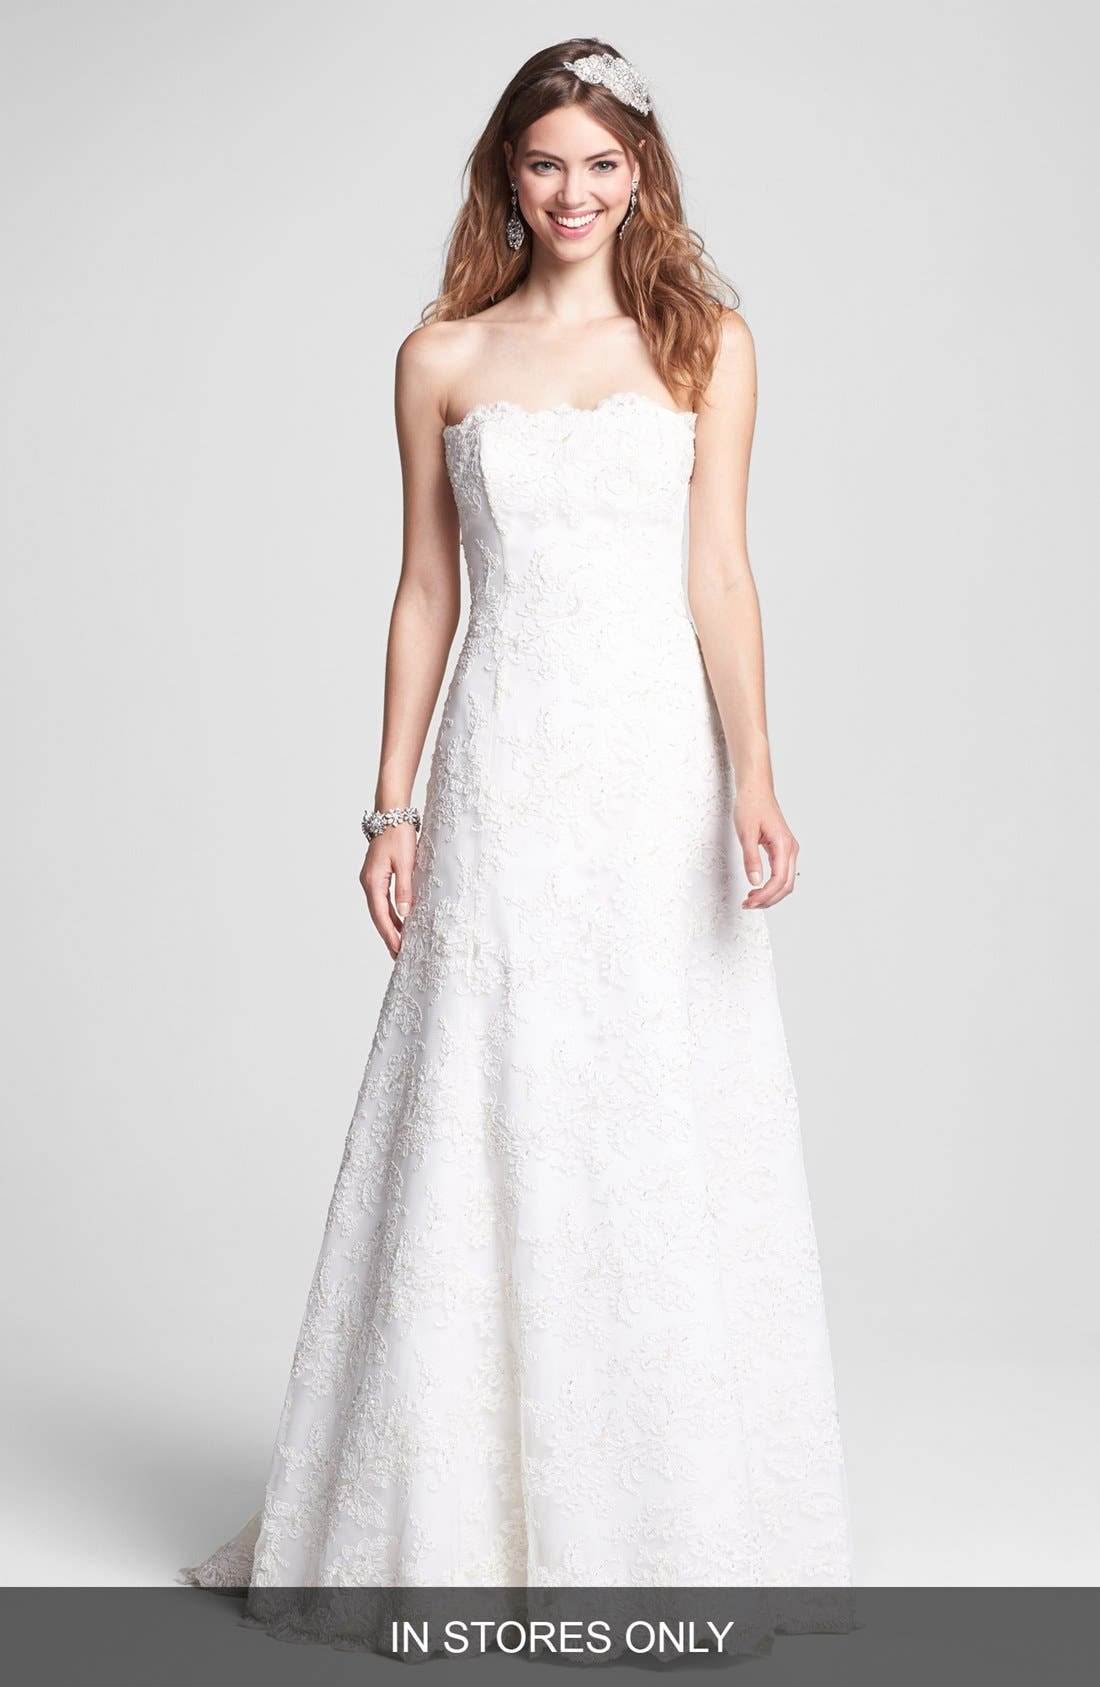 Alternate Image 1 Selected - BLISS Monique Lhuillier Strapless Beaded Lace Wedding Dress (In Stores Only)